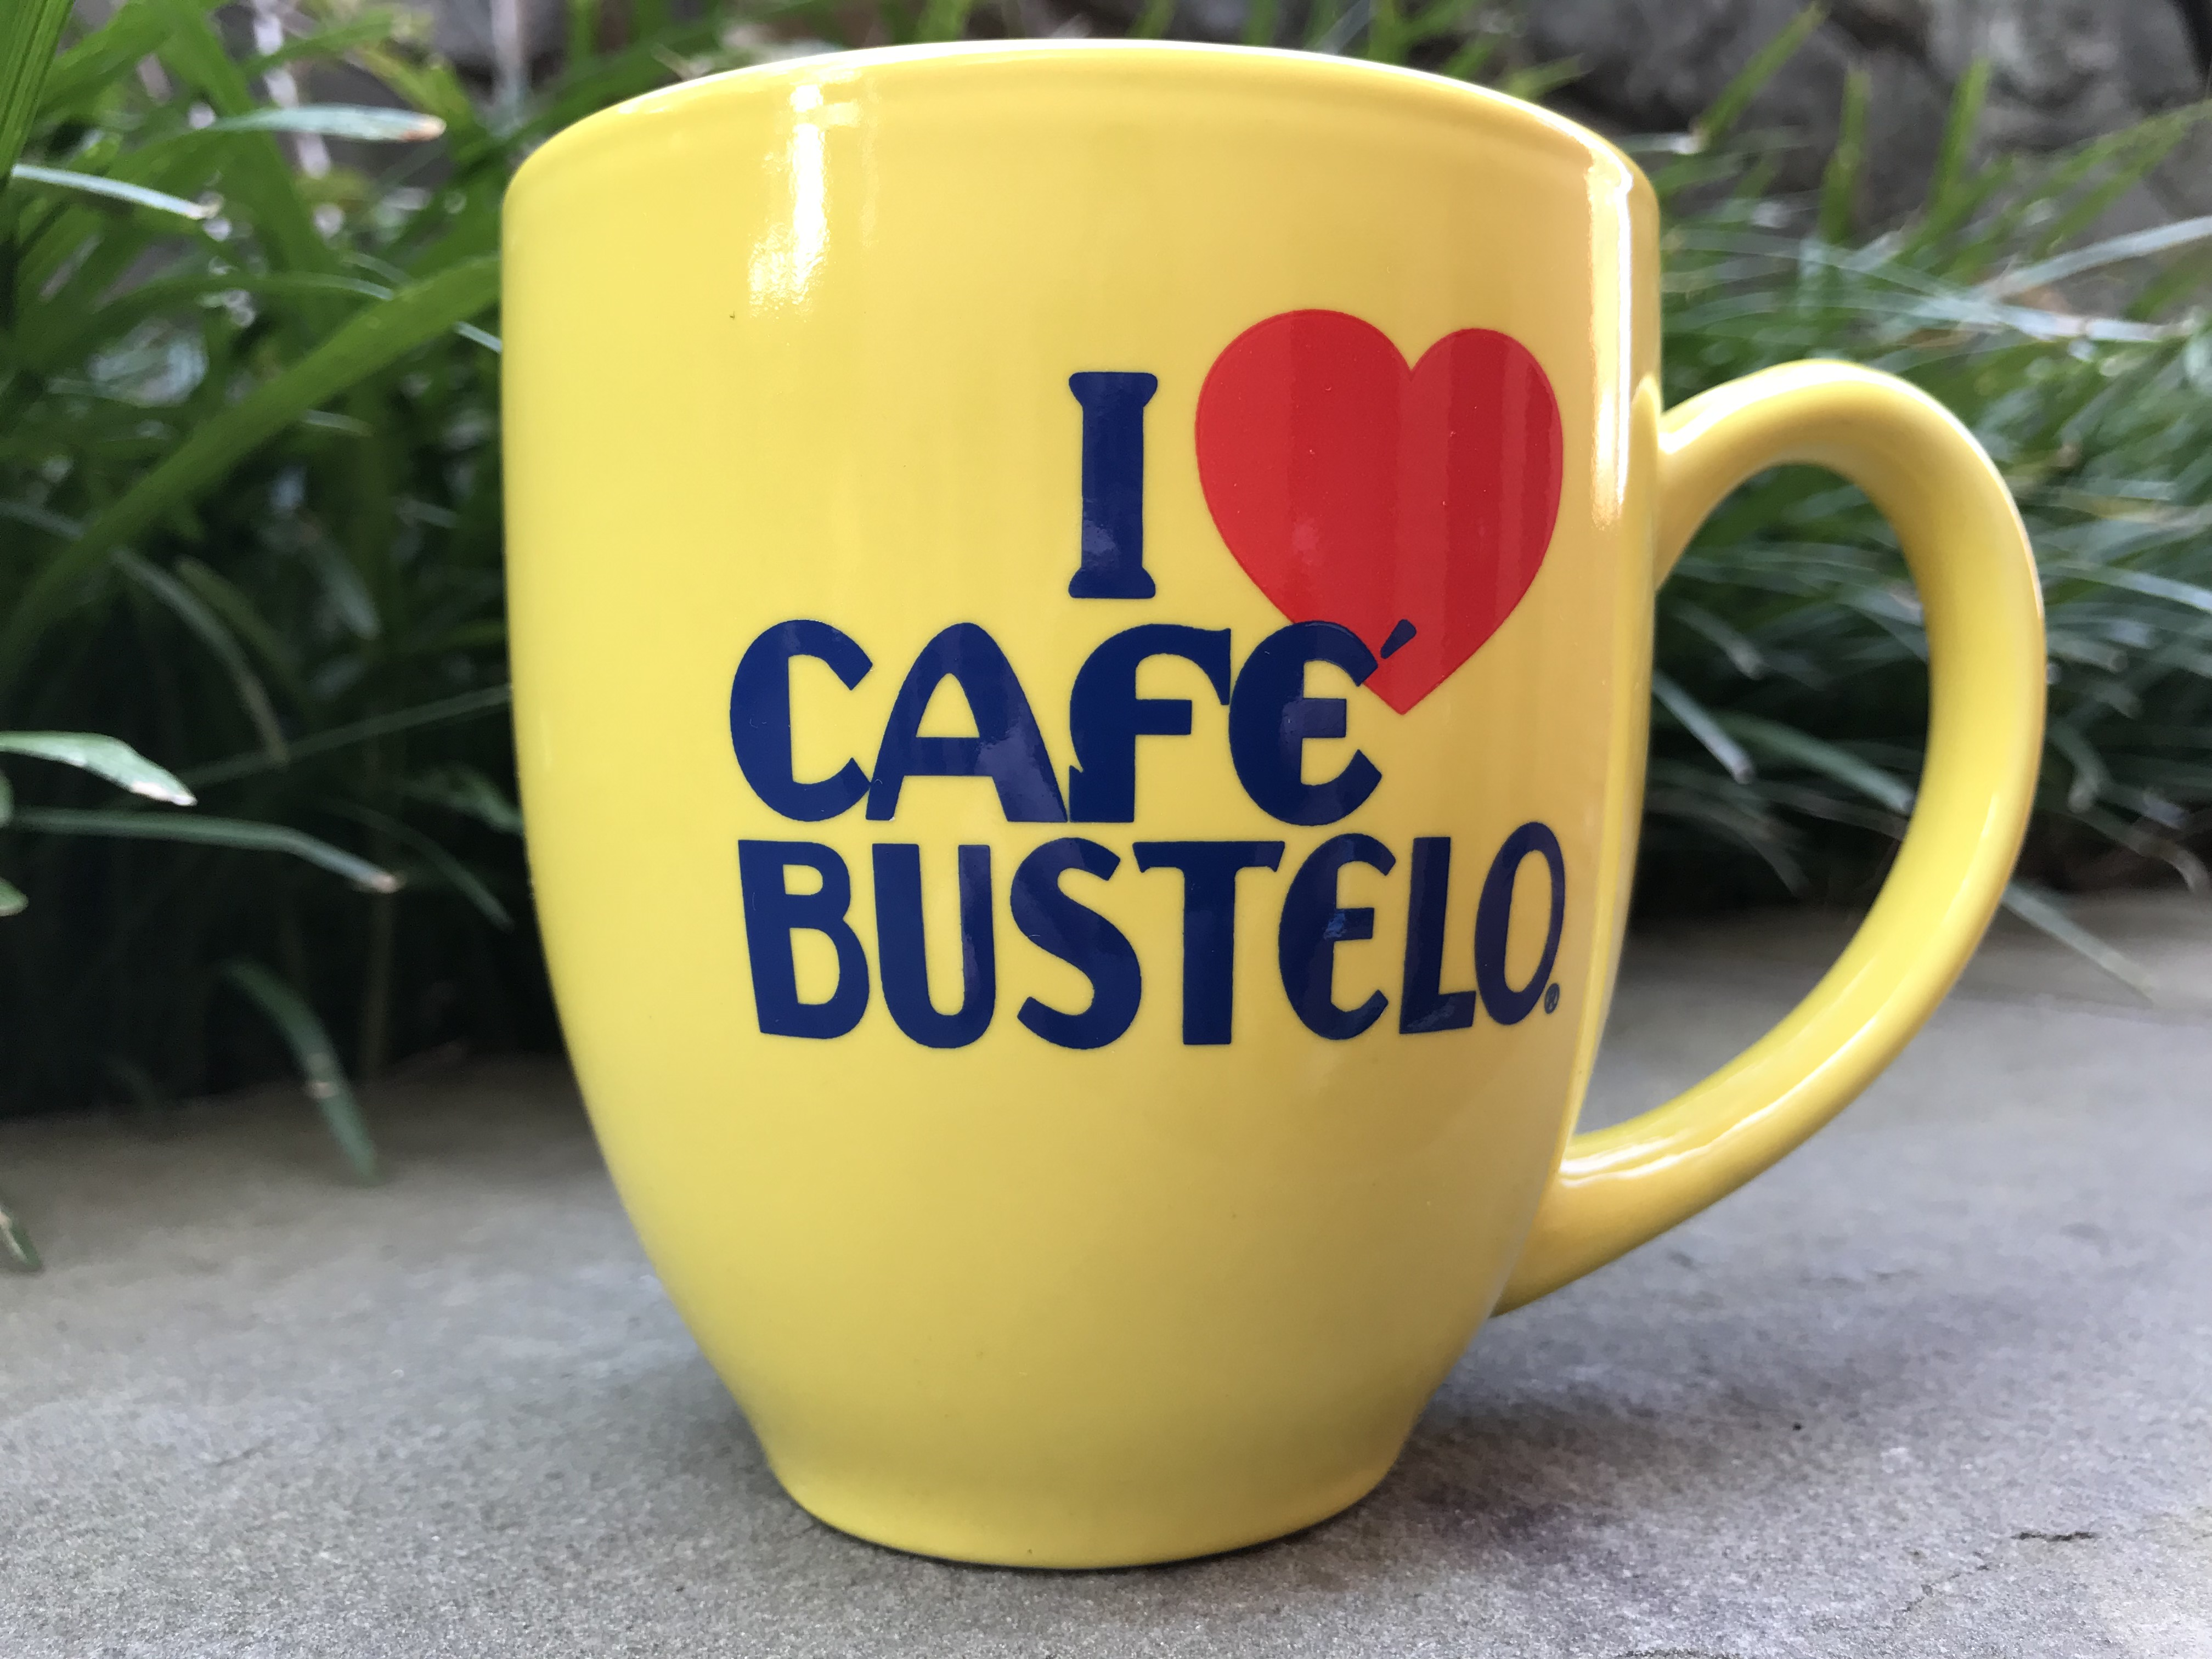 cafe bustelo coffee mug image